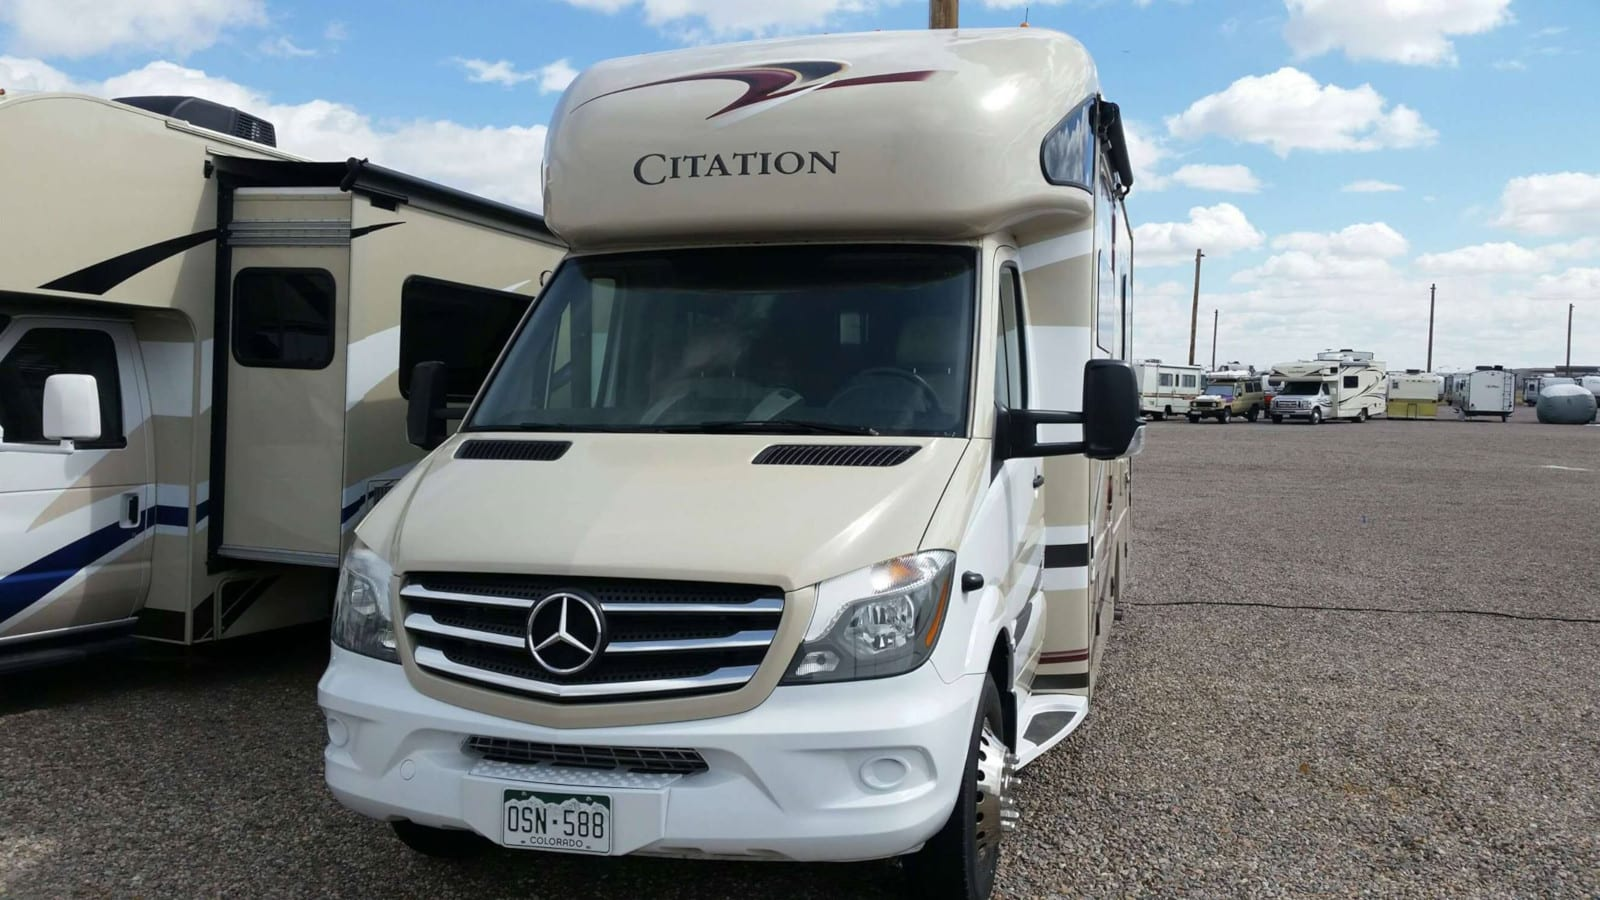 RV Rental Denver B&B 2018 Thor Citation 24ST